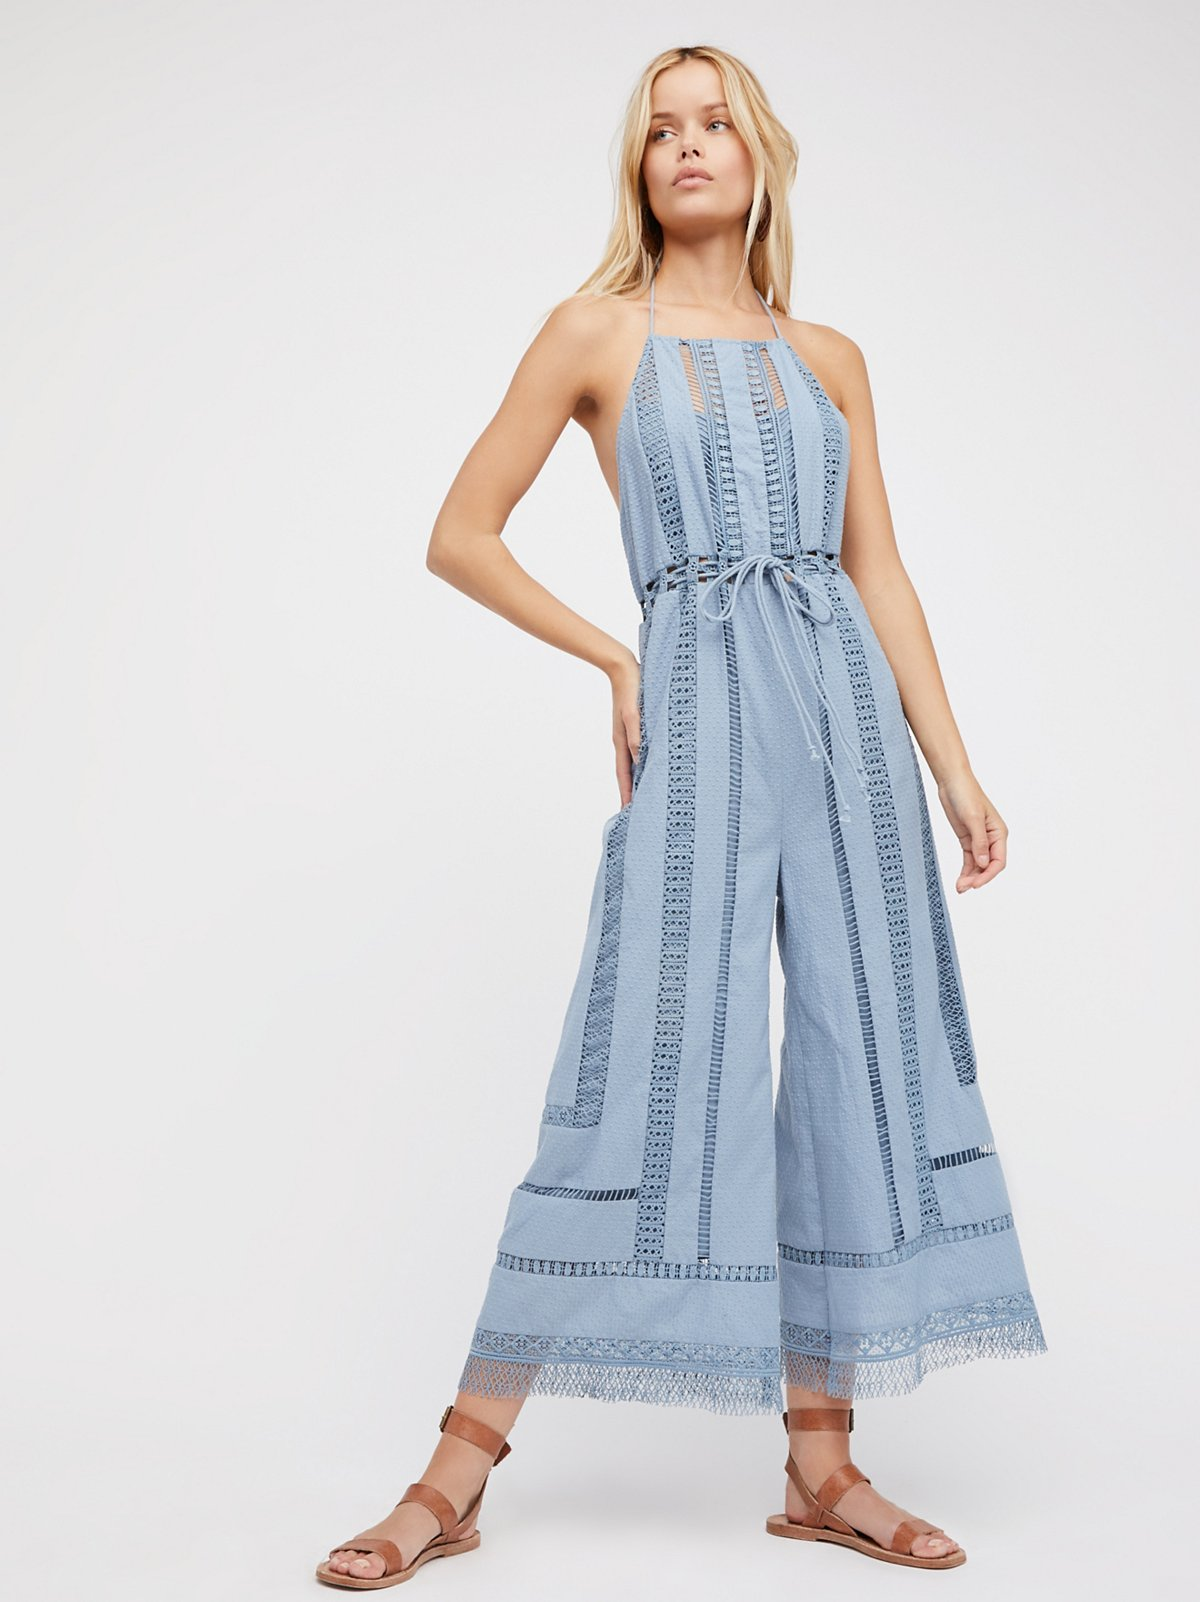 Sydney Sky Romper At Free People Clothing Boutique